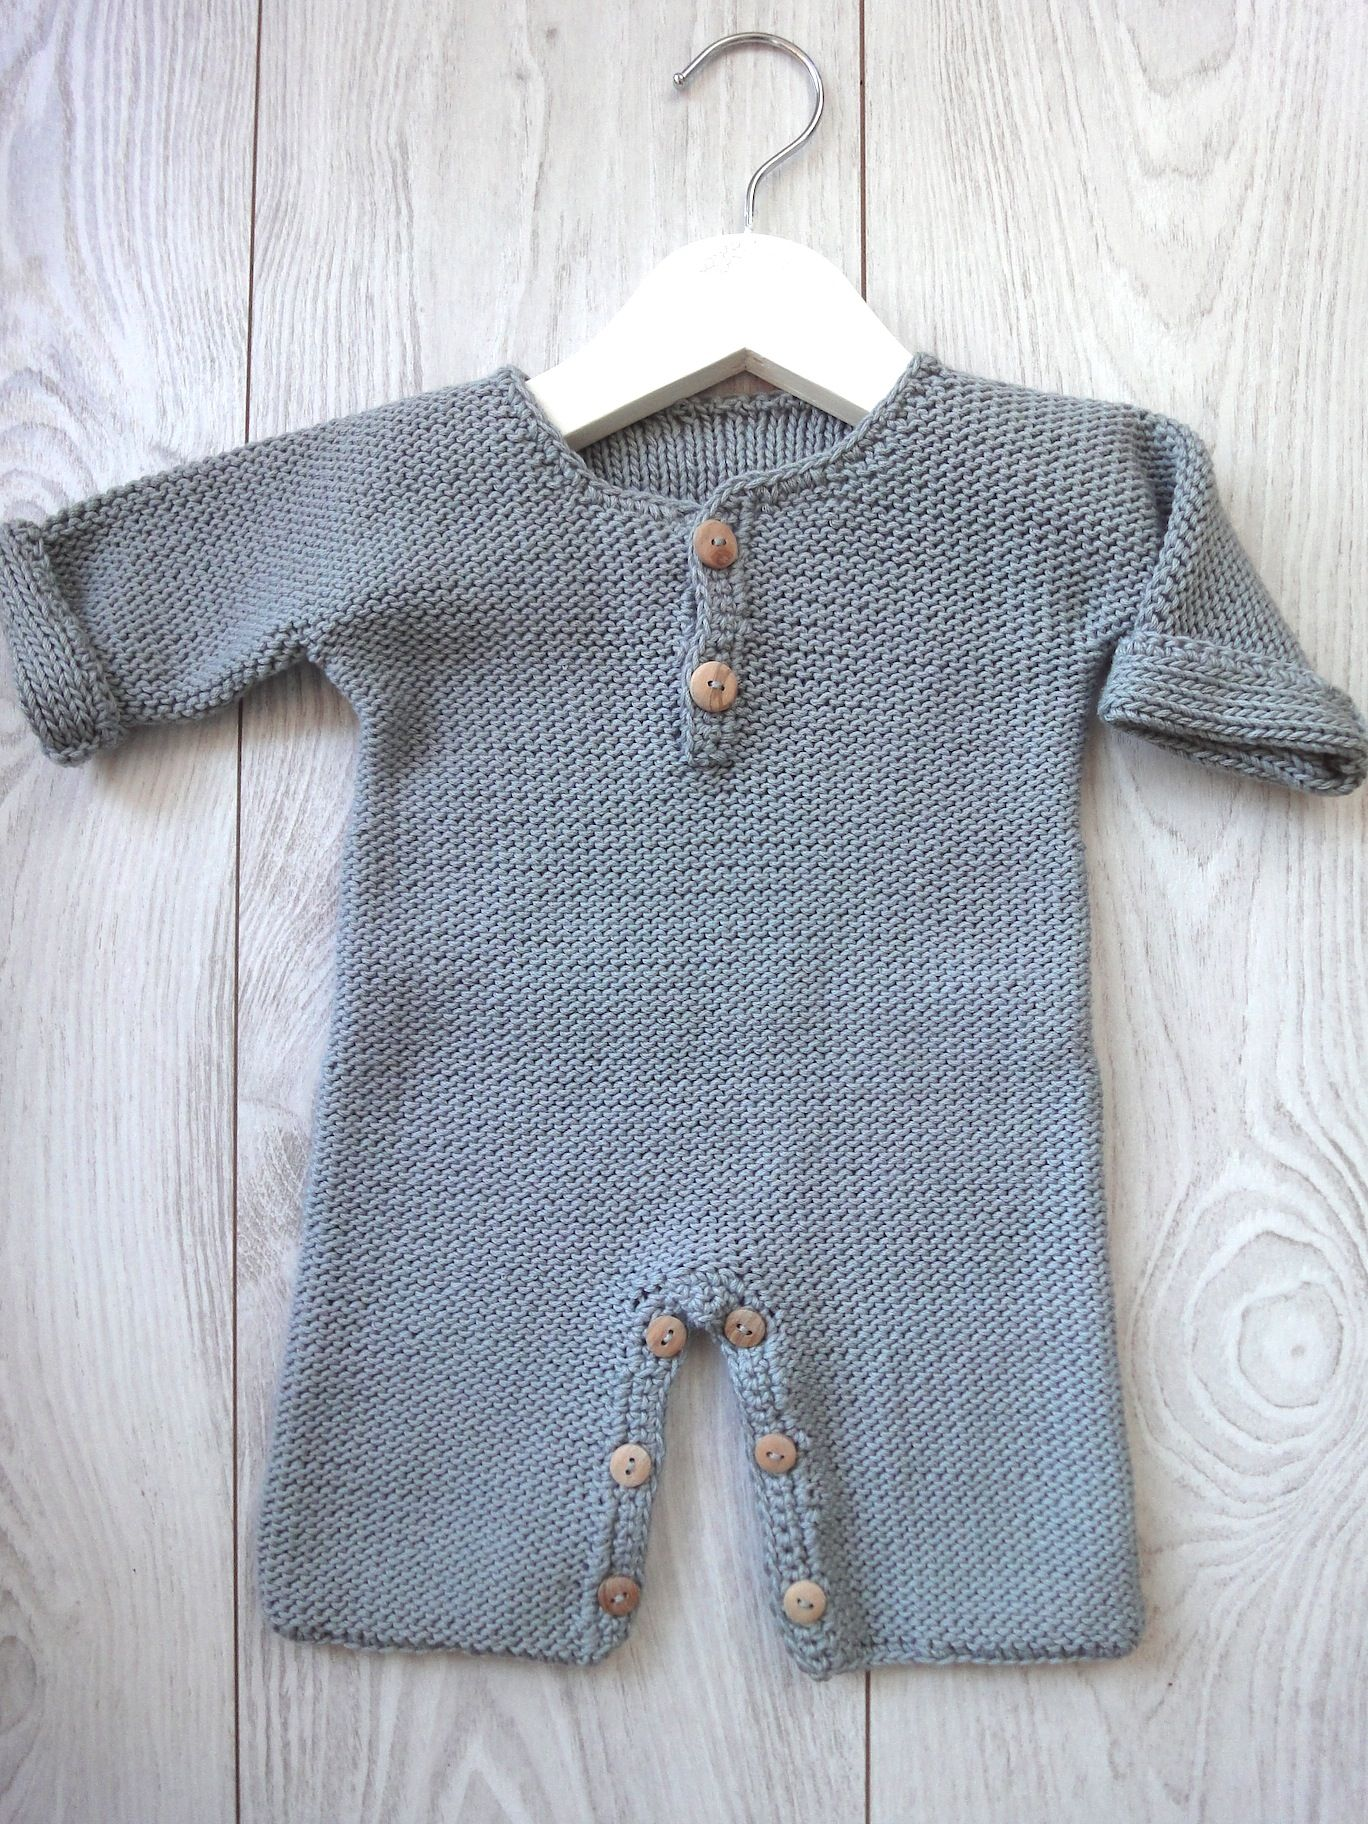 eco baby clothing. This whole site is beautiful!